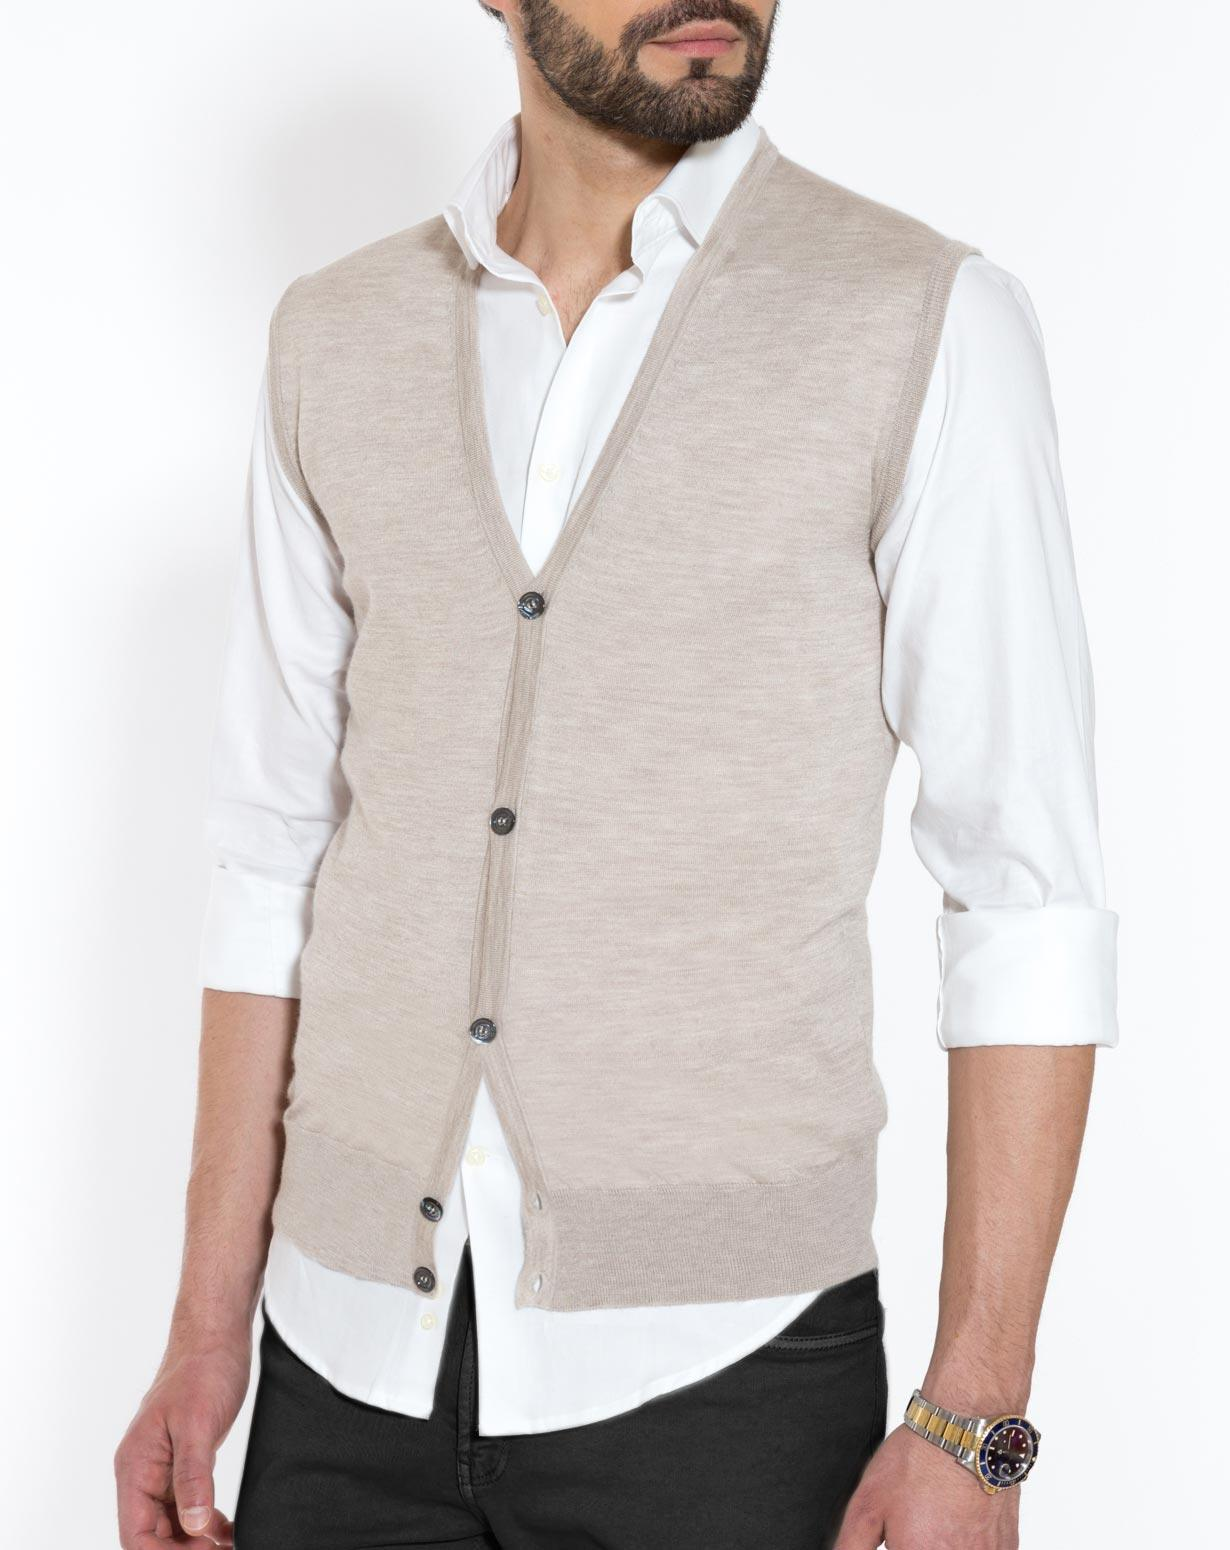 Men's Silk Cashmere Sleeveless Cardigan